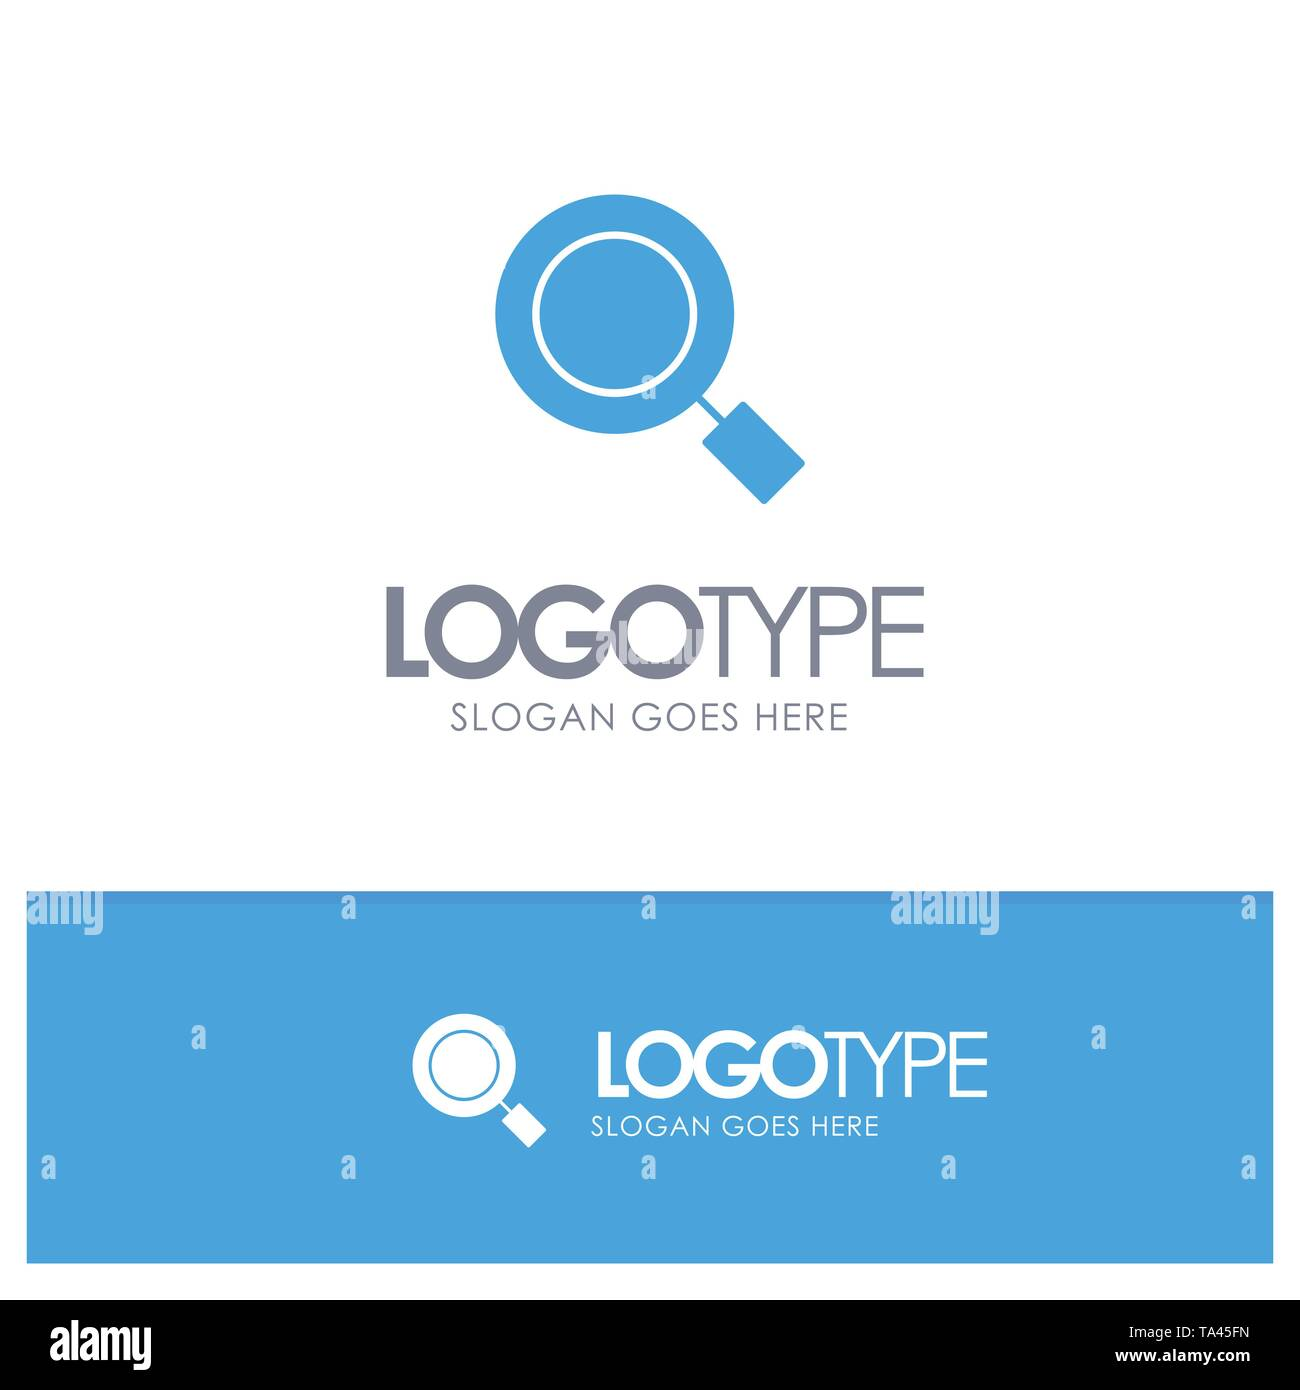 General, Magnifier, Magnify, Search Blue Solid Logo with place for tagline - Stock Image